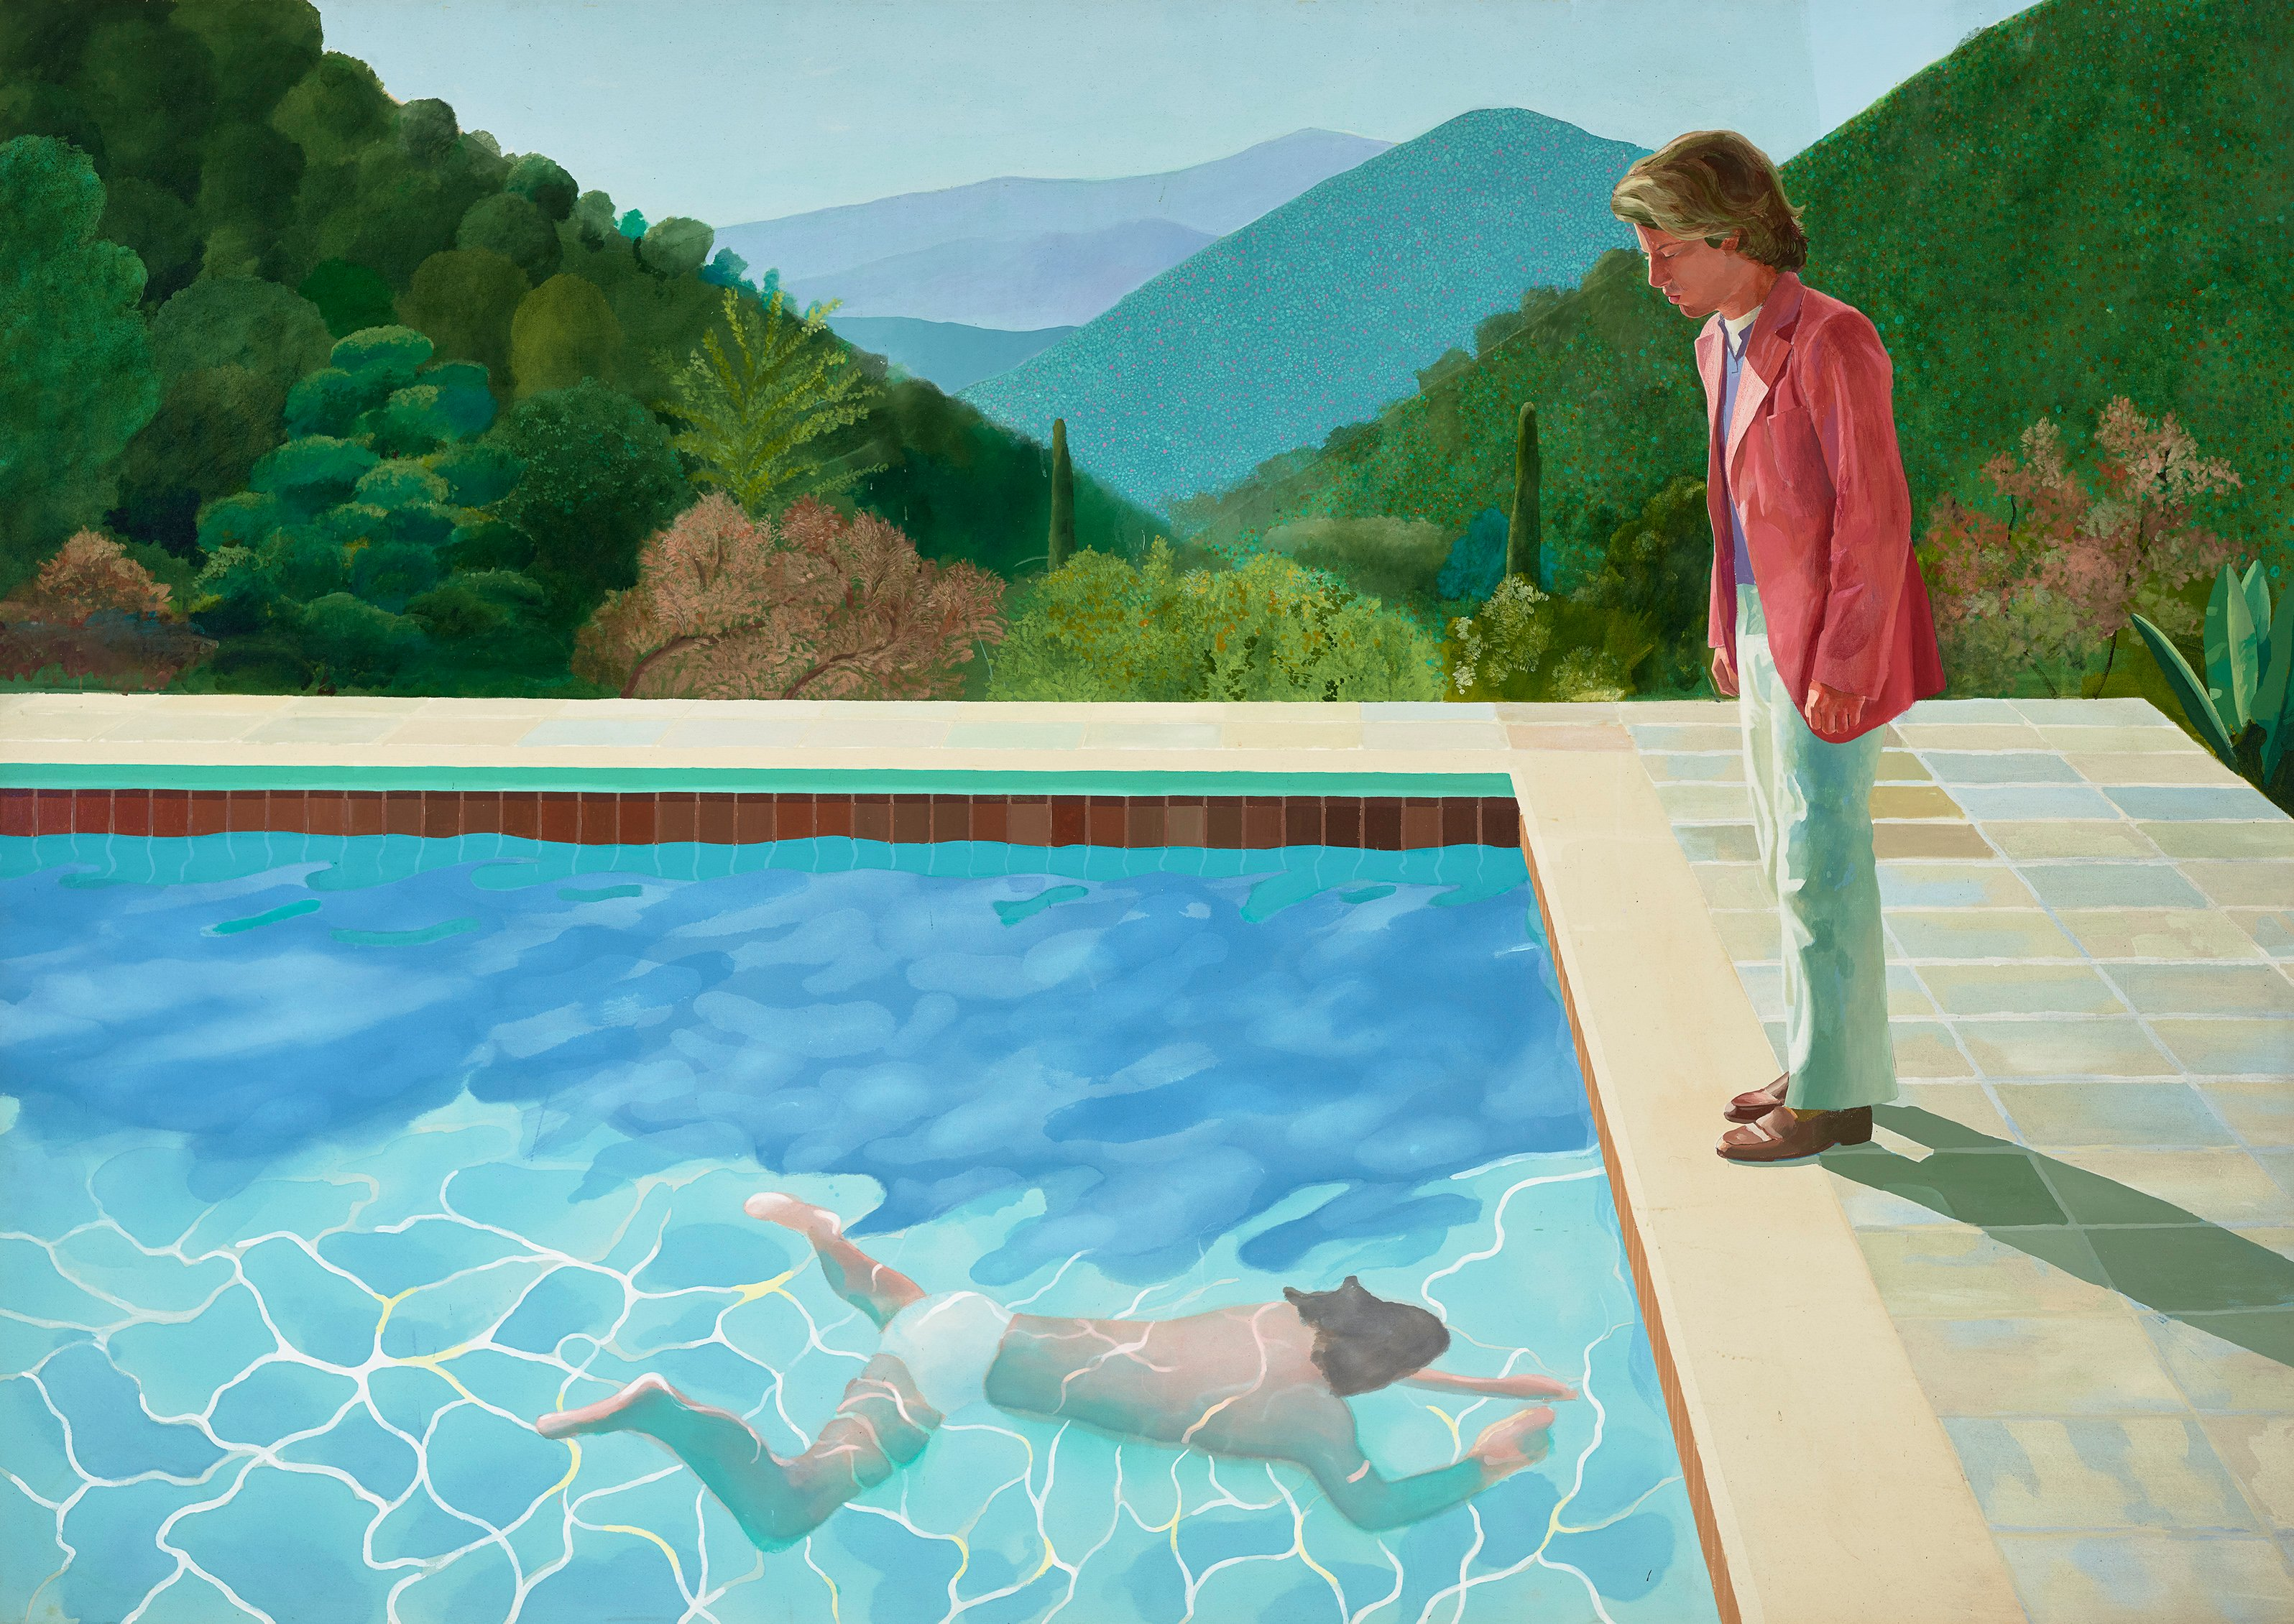 David Hockney: Portrait of an Artist (Pool with Two Figures), 1972